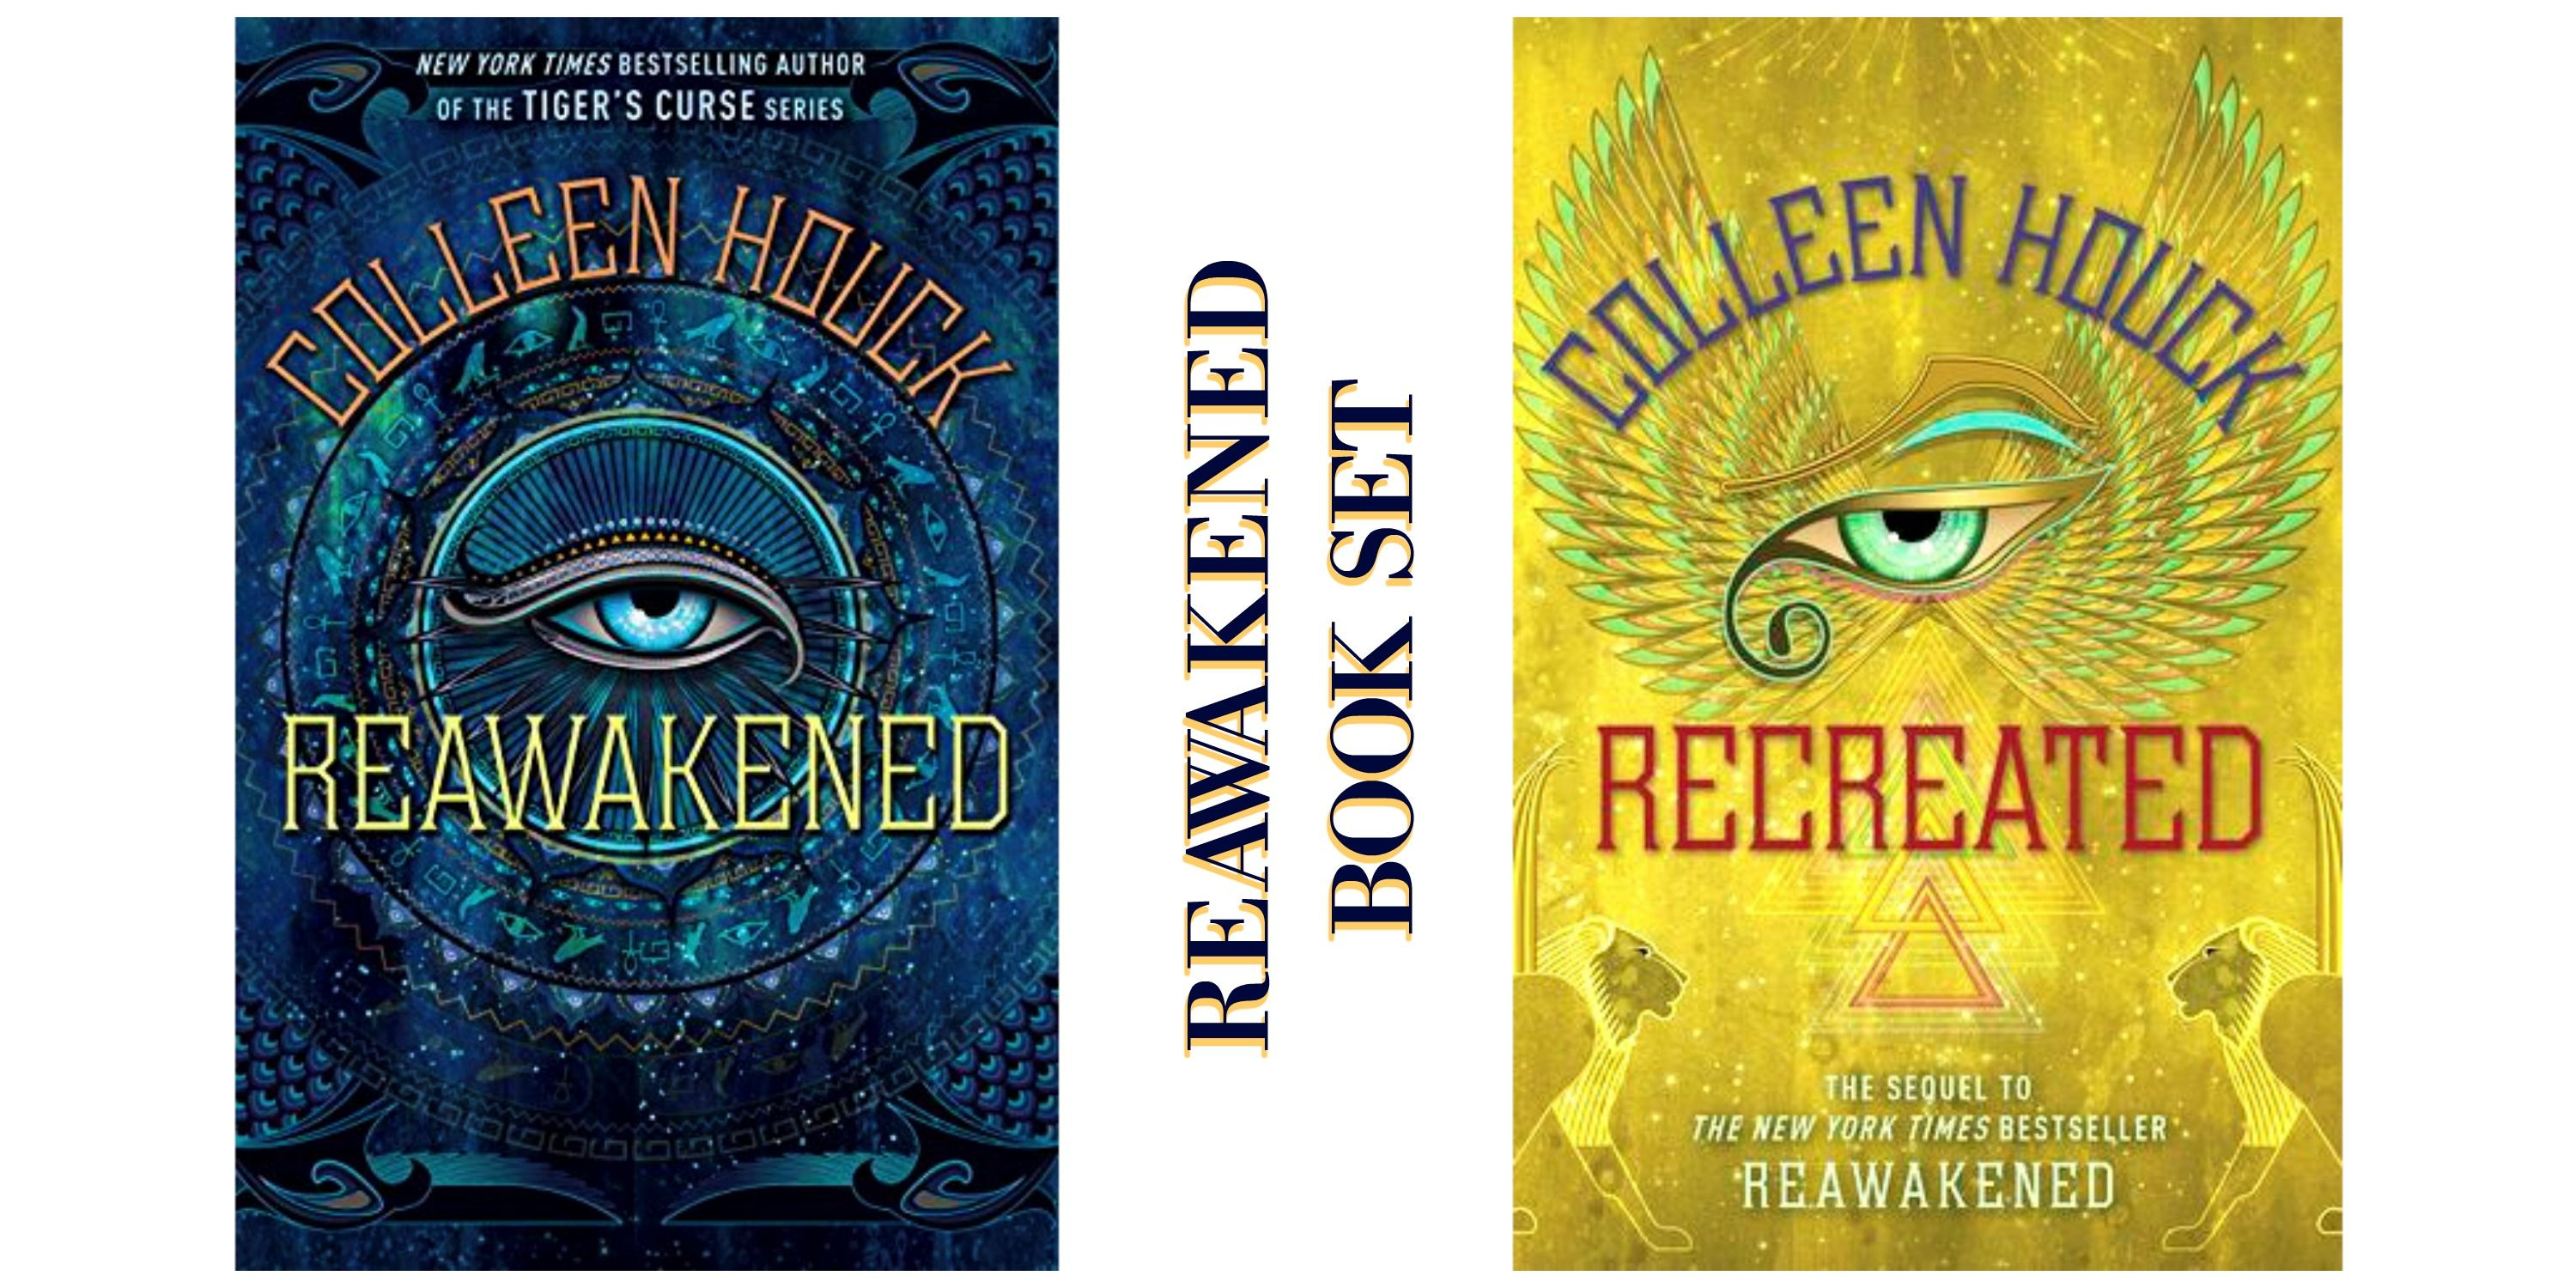 There will be PRIZE GIVEAWAYS during the blog tour (5 Book Sets of the  Reawakened